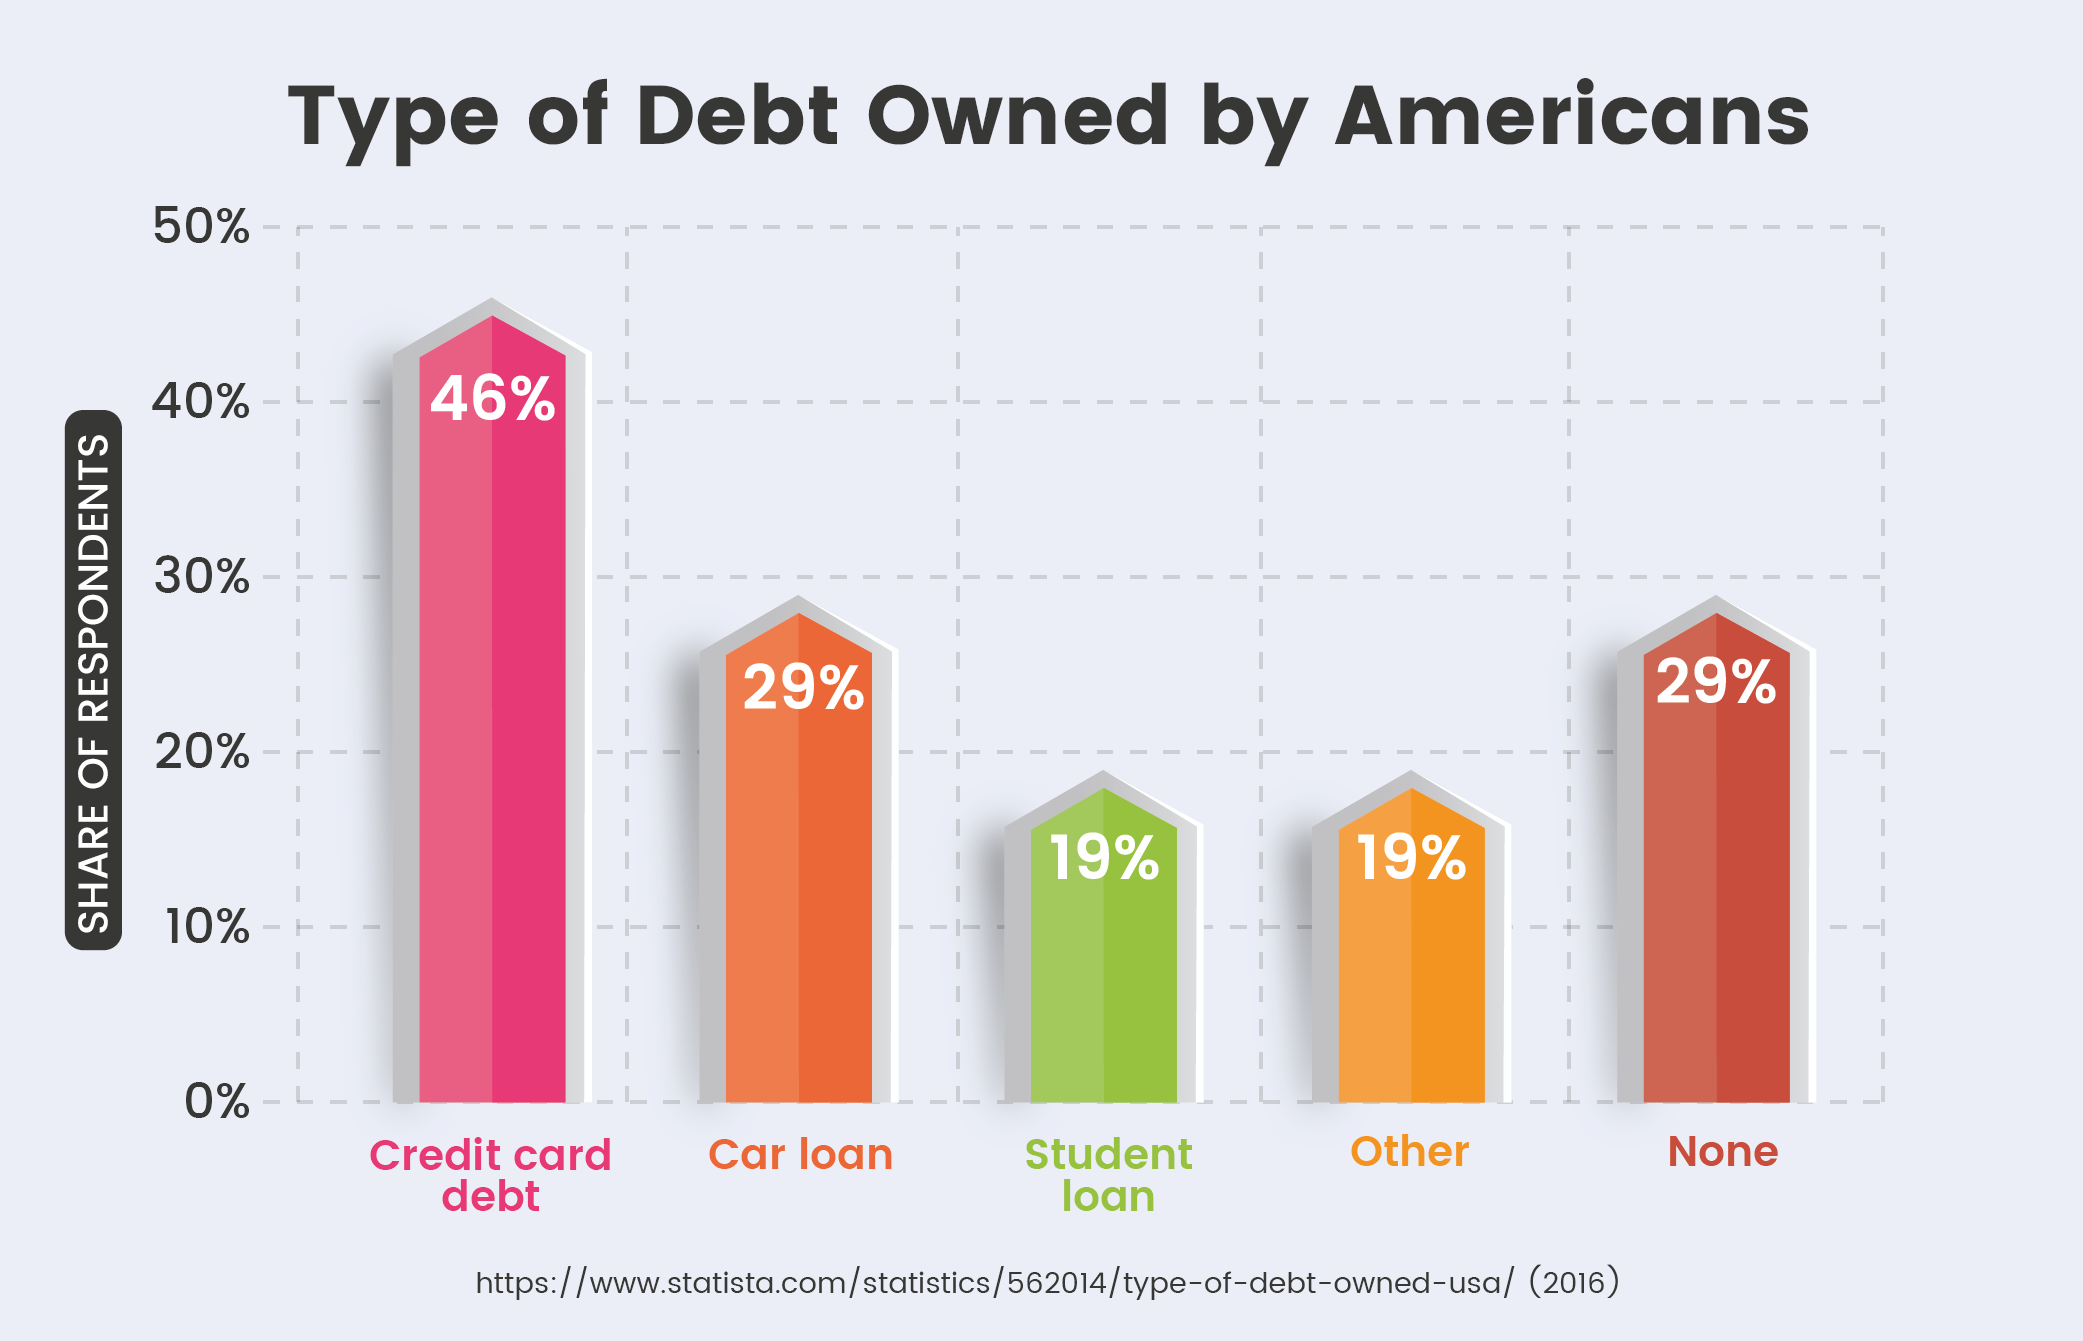 Type of Debt Owned by Americans